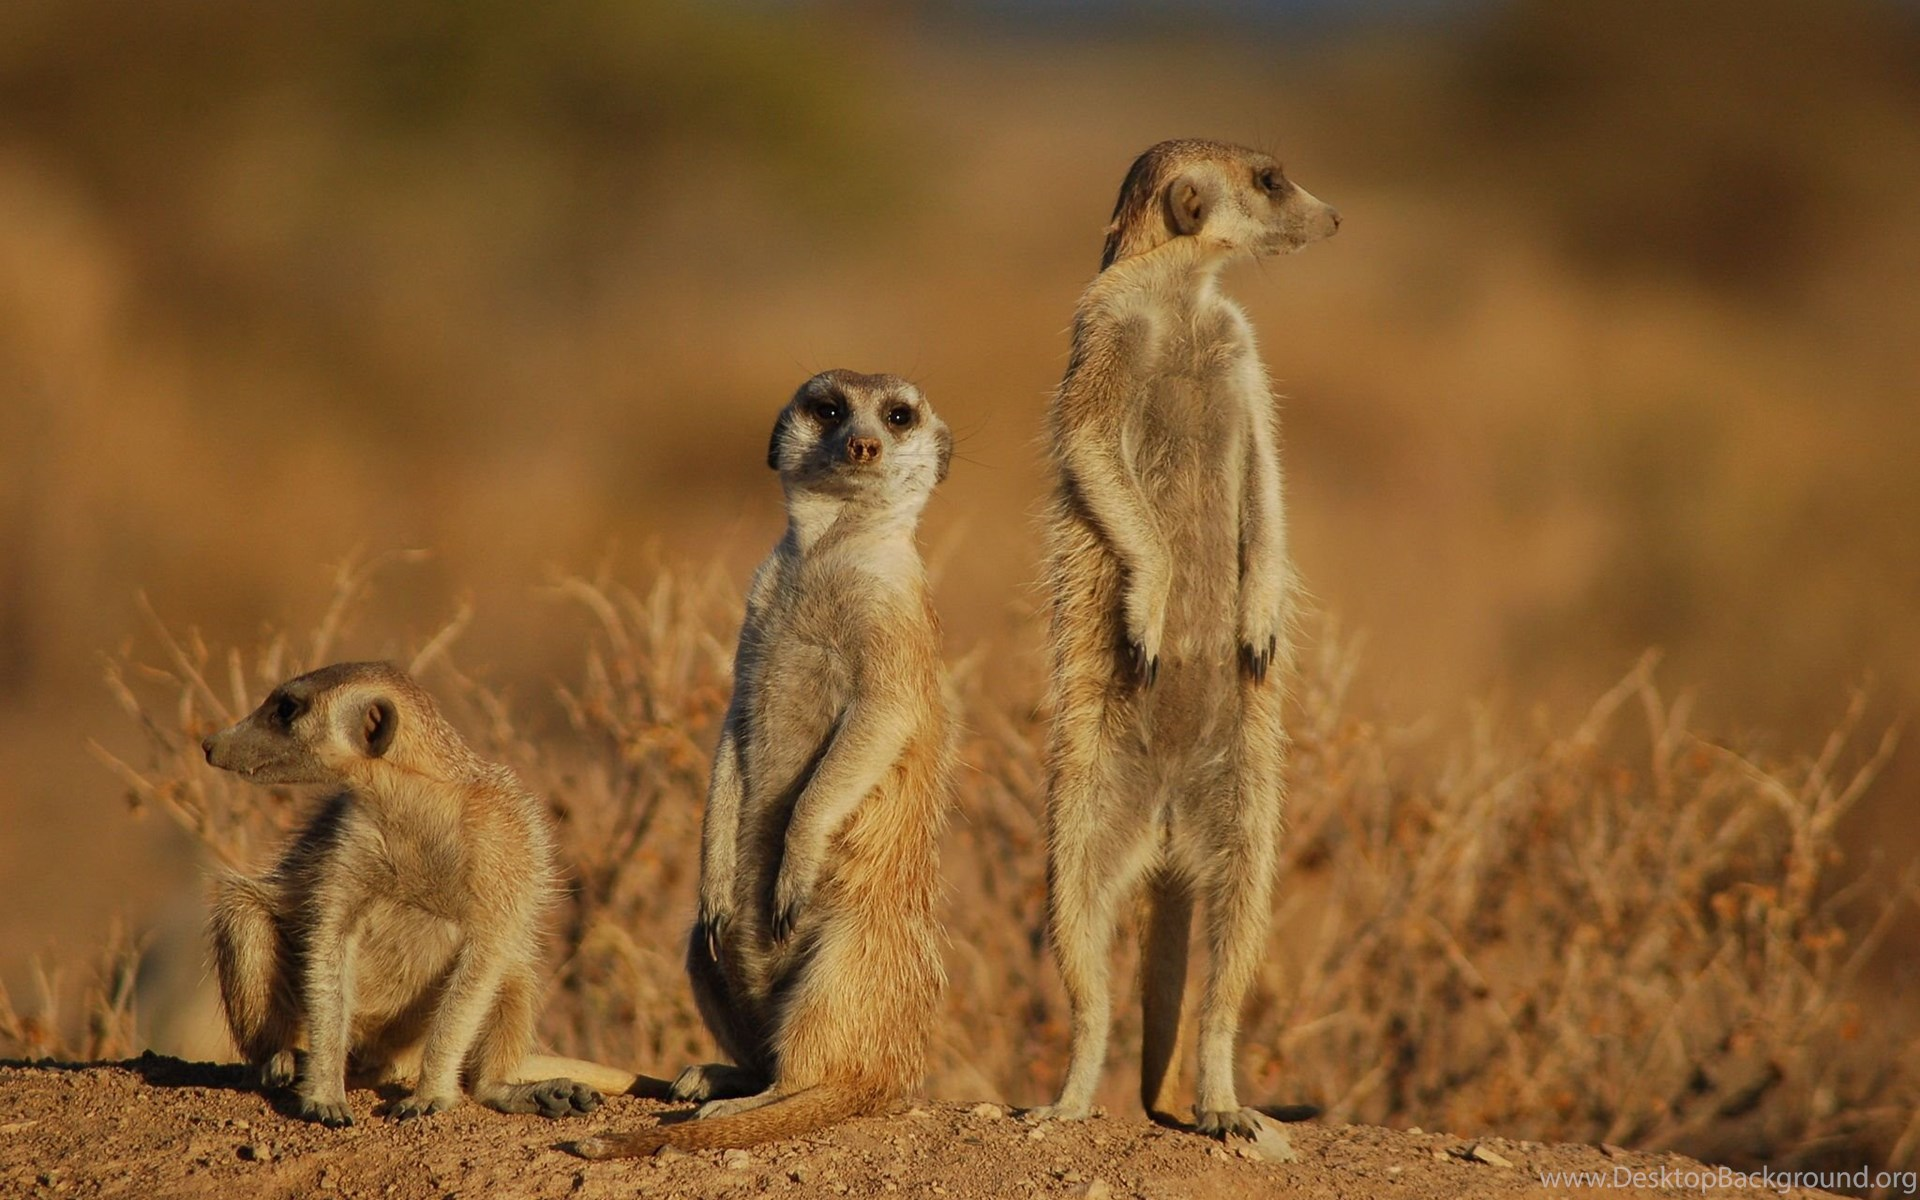 Meerkat 1920x1080p HD Animal Wildlife Nature Wallpapers Desktop